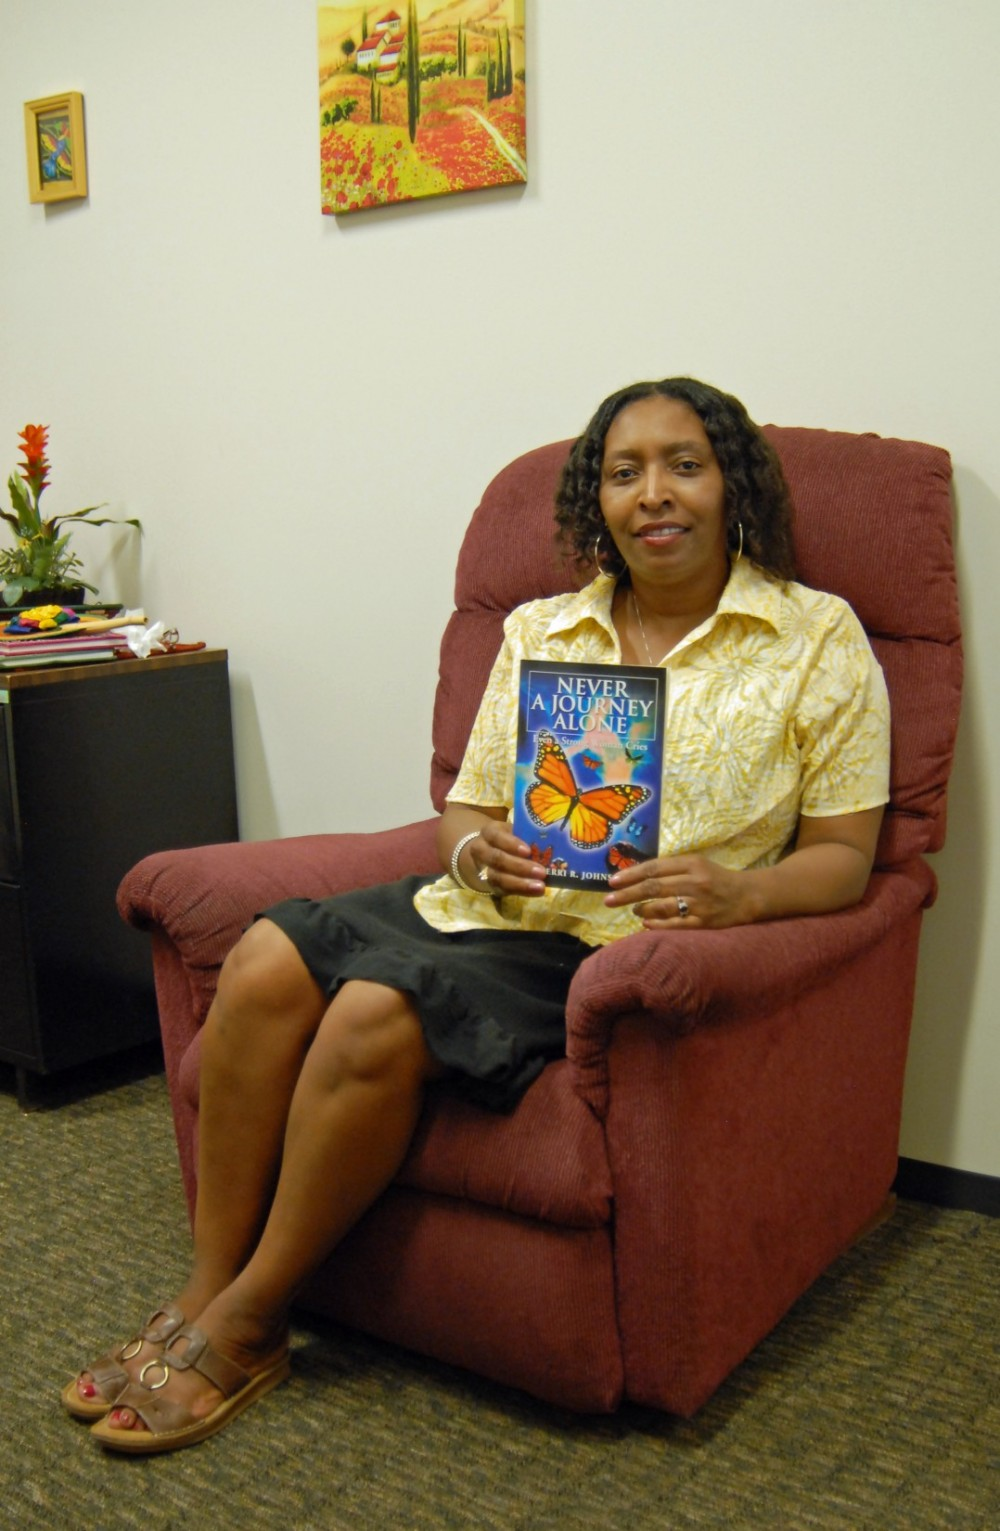 Terri Johnson, assistant dean for student multicultural affairs, displays a copy of the poetry book she recently published.